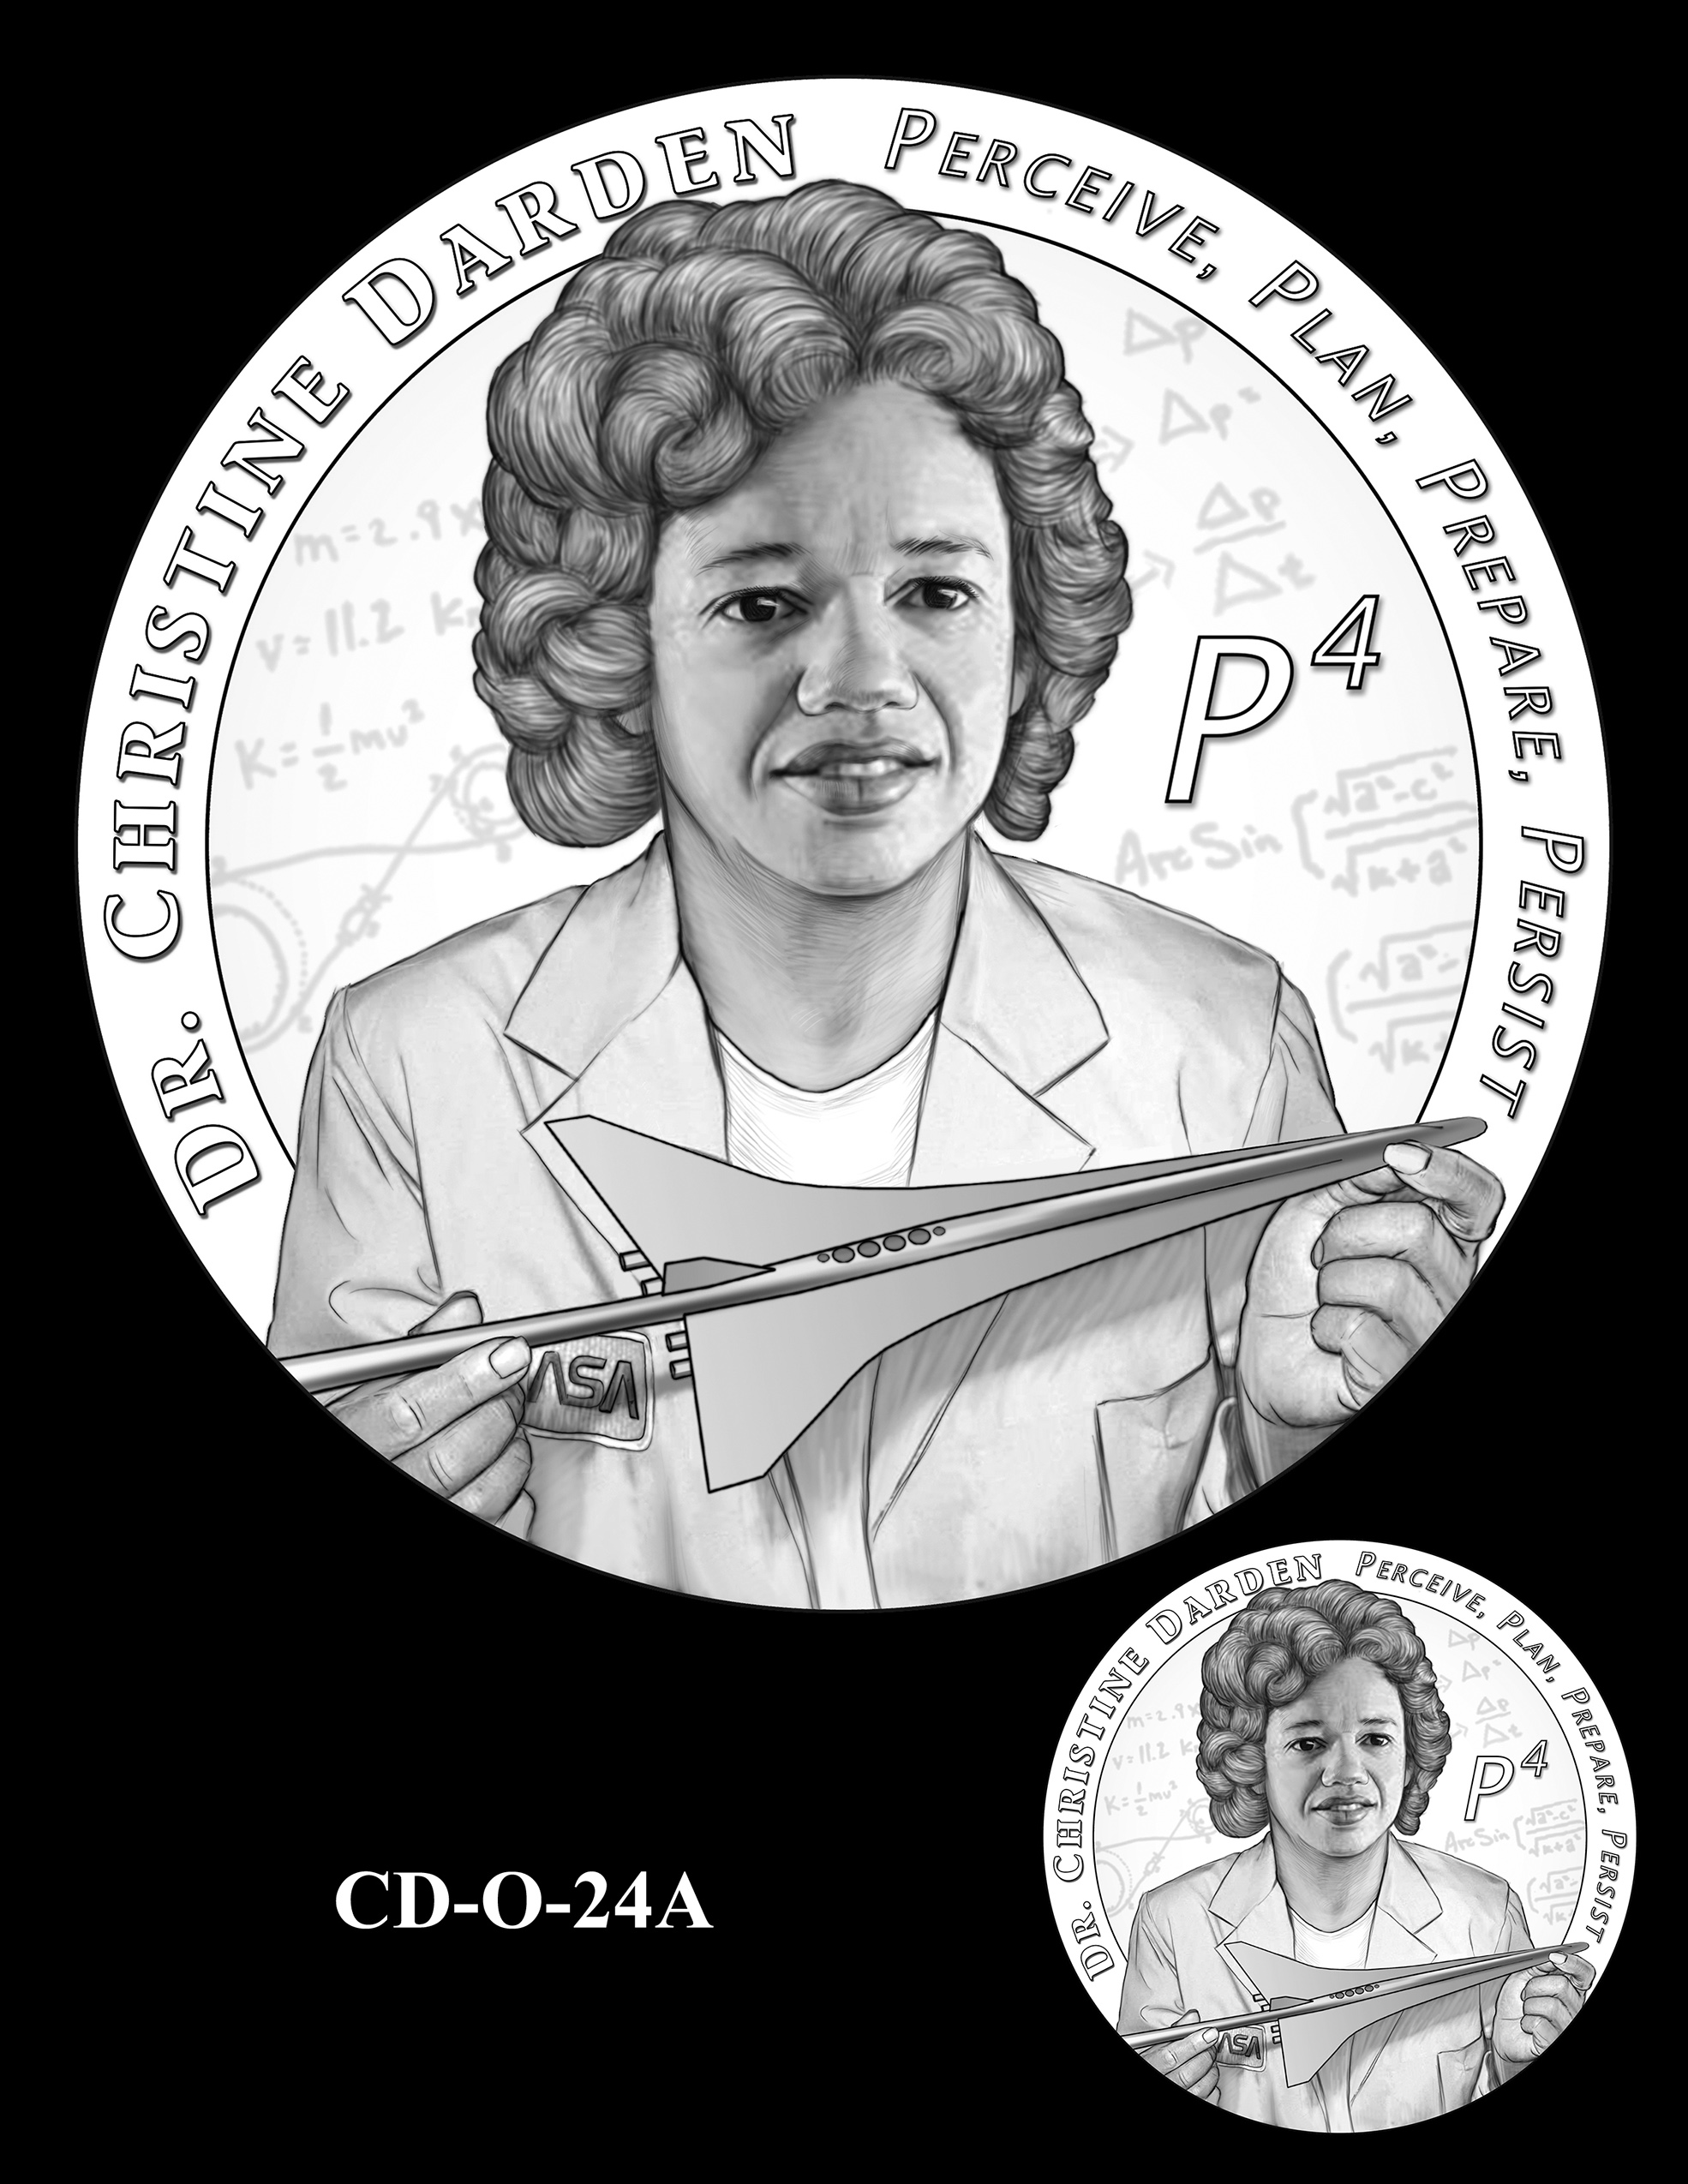 CD-O-24A -- Dr. Christine Darden Congressional Gold Medal